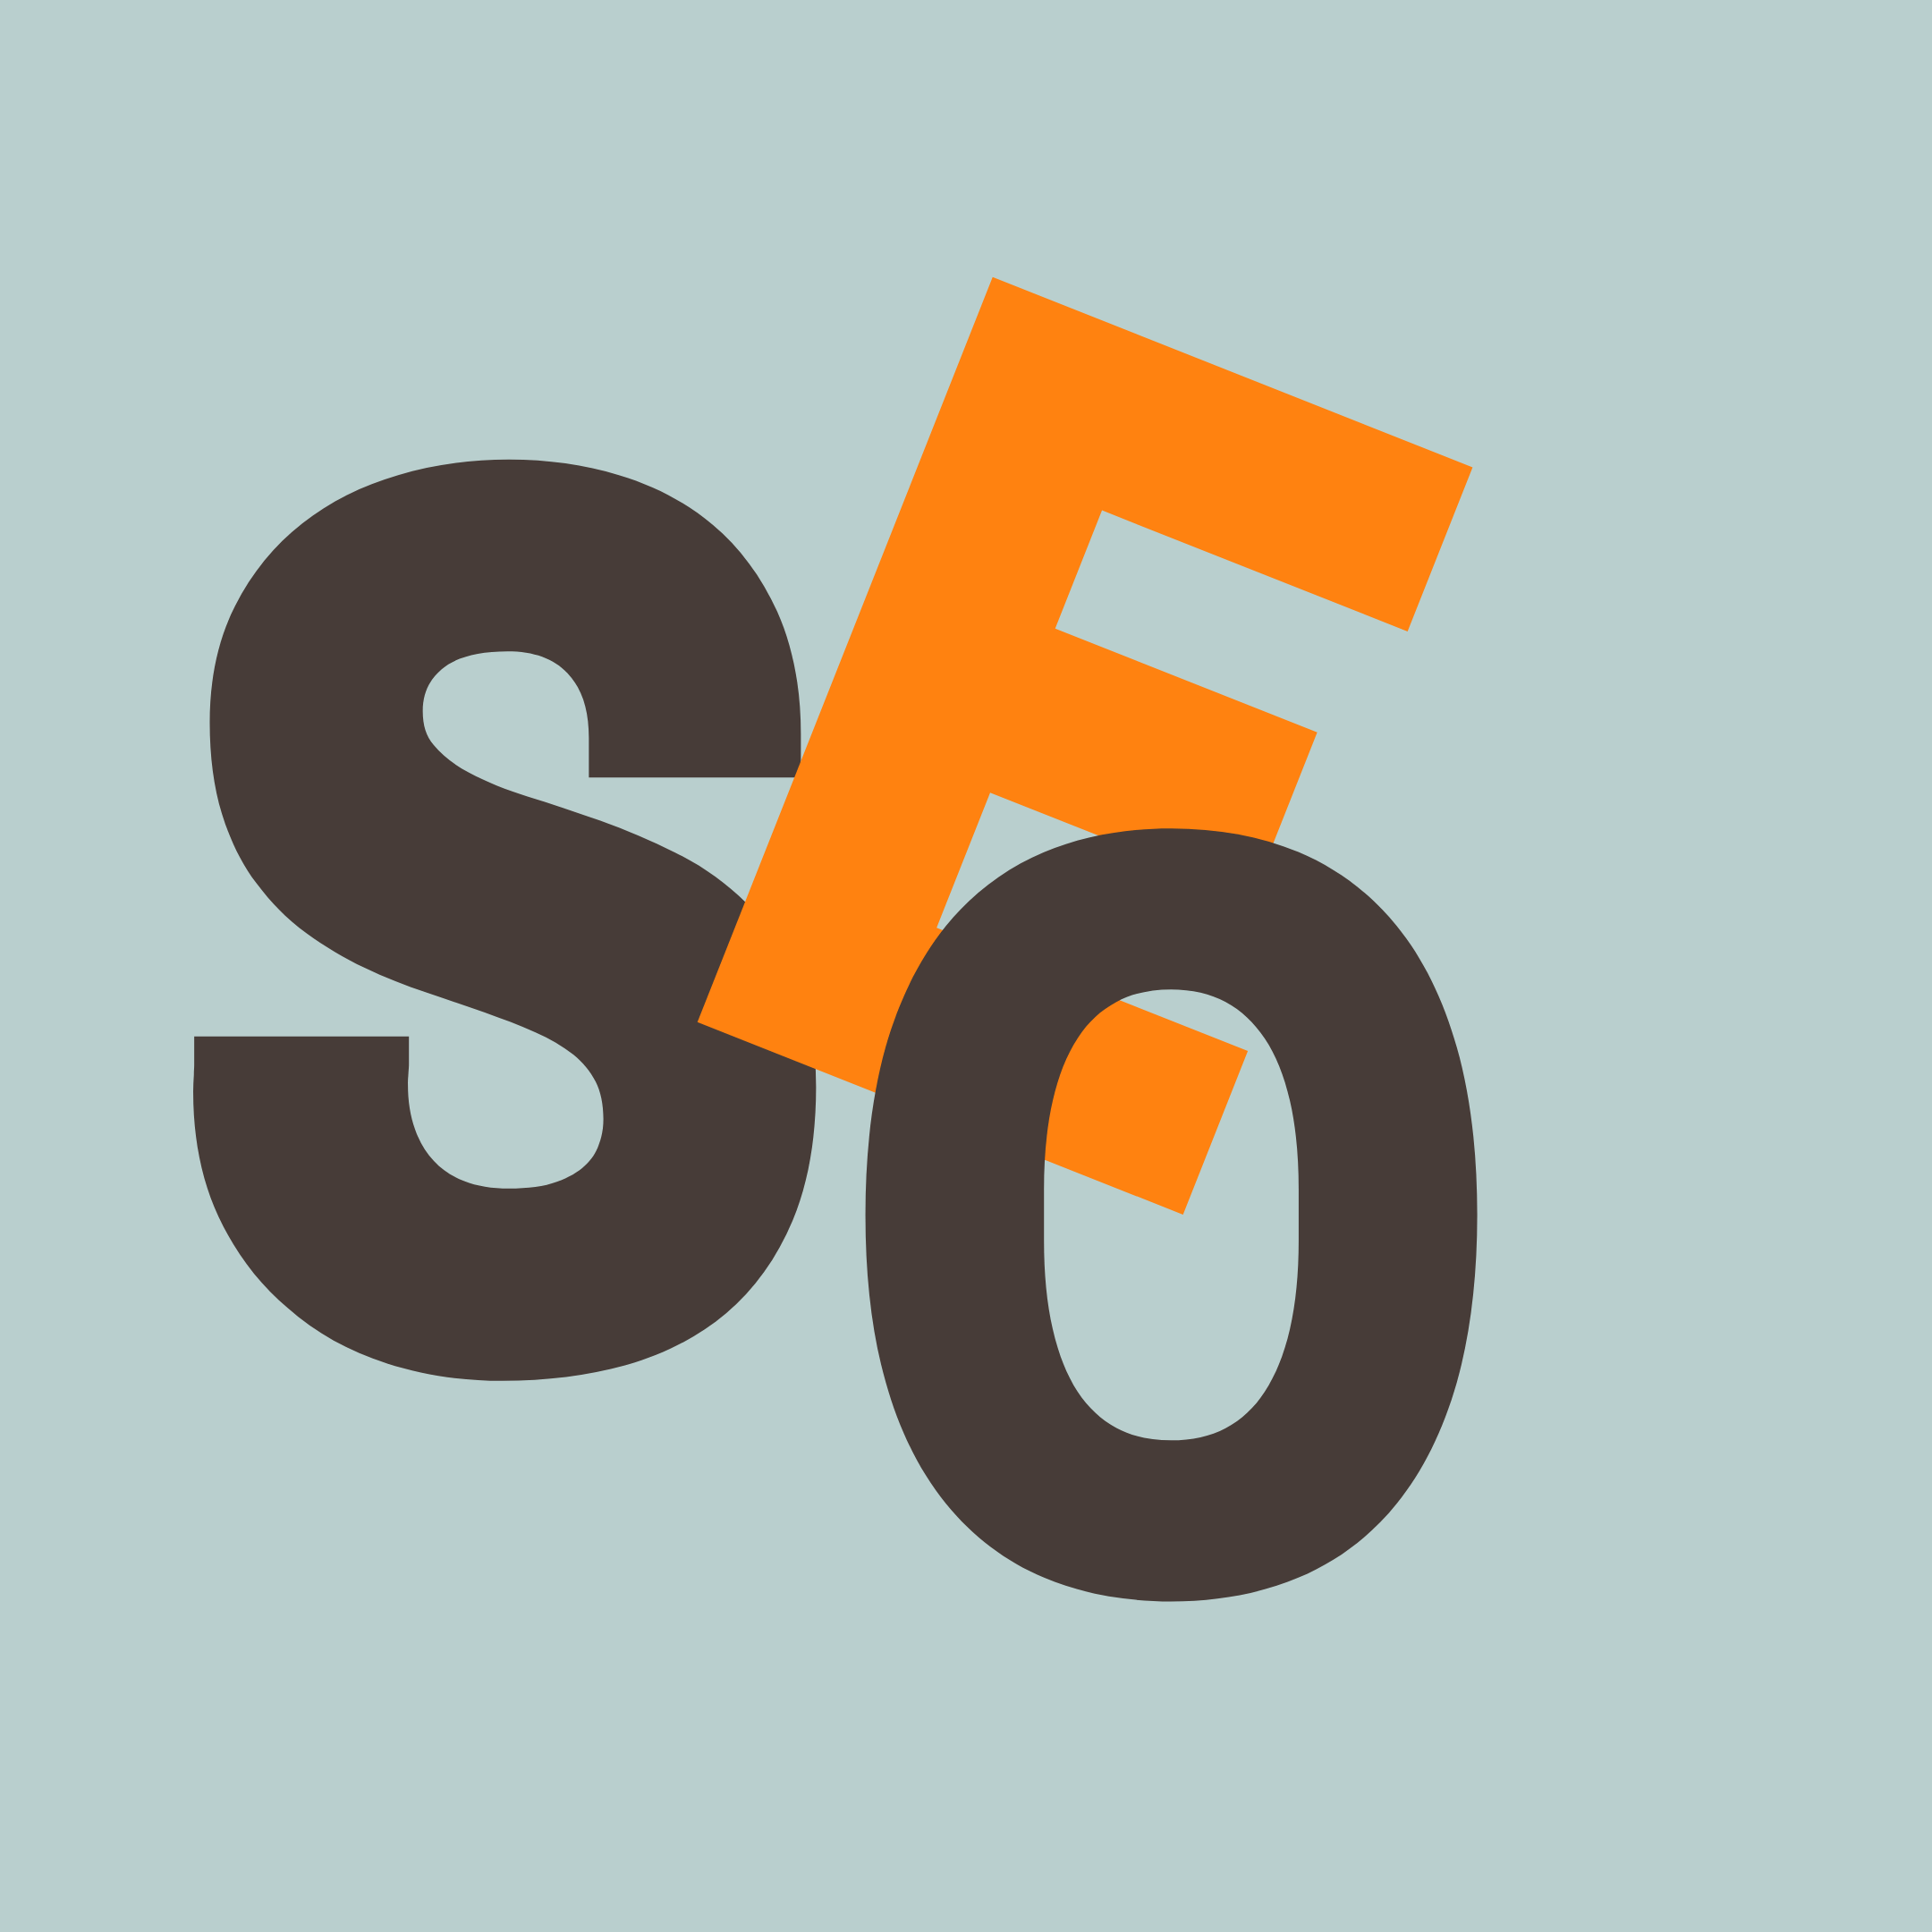 just-seo.png